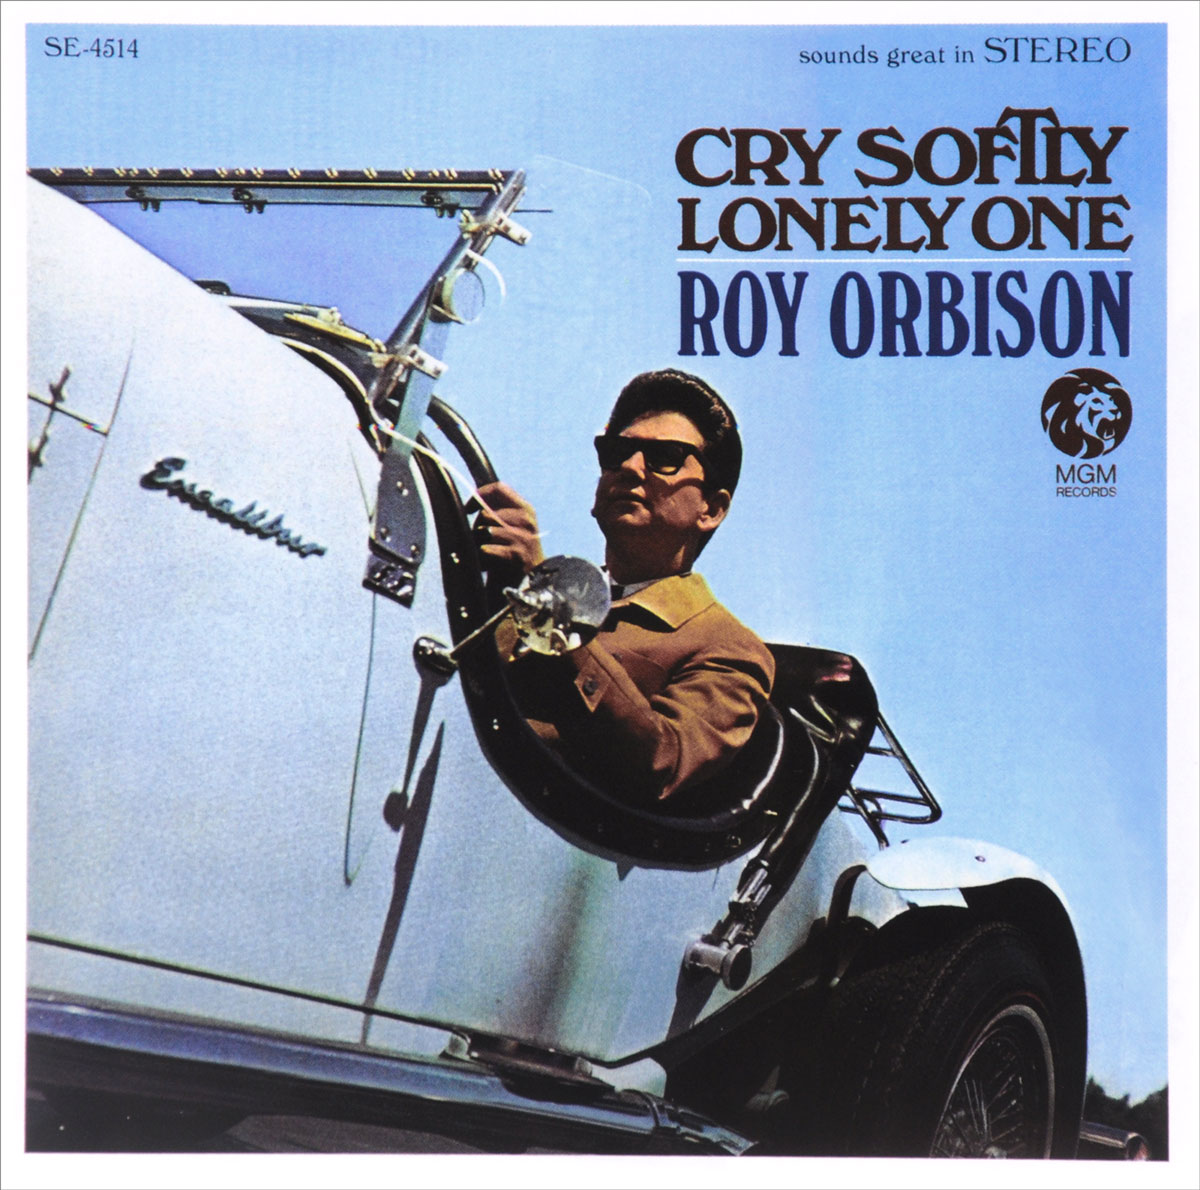 Рой Орбисон Roy Orbison. Cry Softly Lonely One рой орбисон хэнк уильямс старший roy orbison the mgm years 13 cd